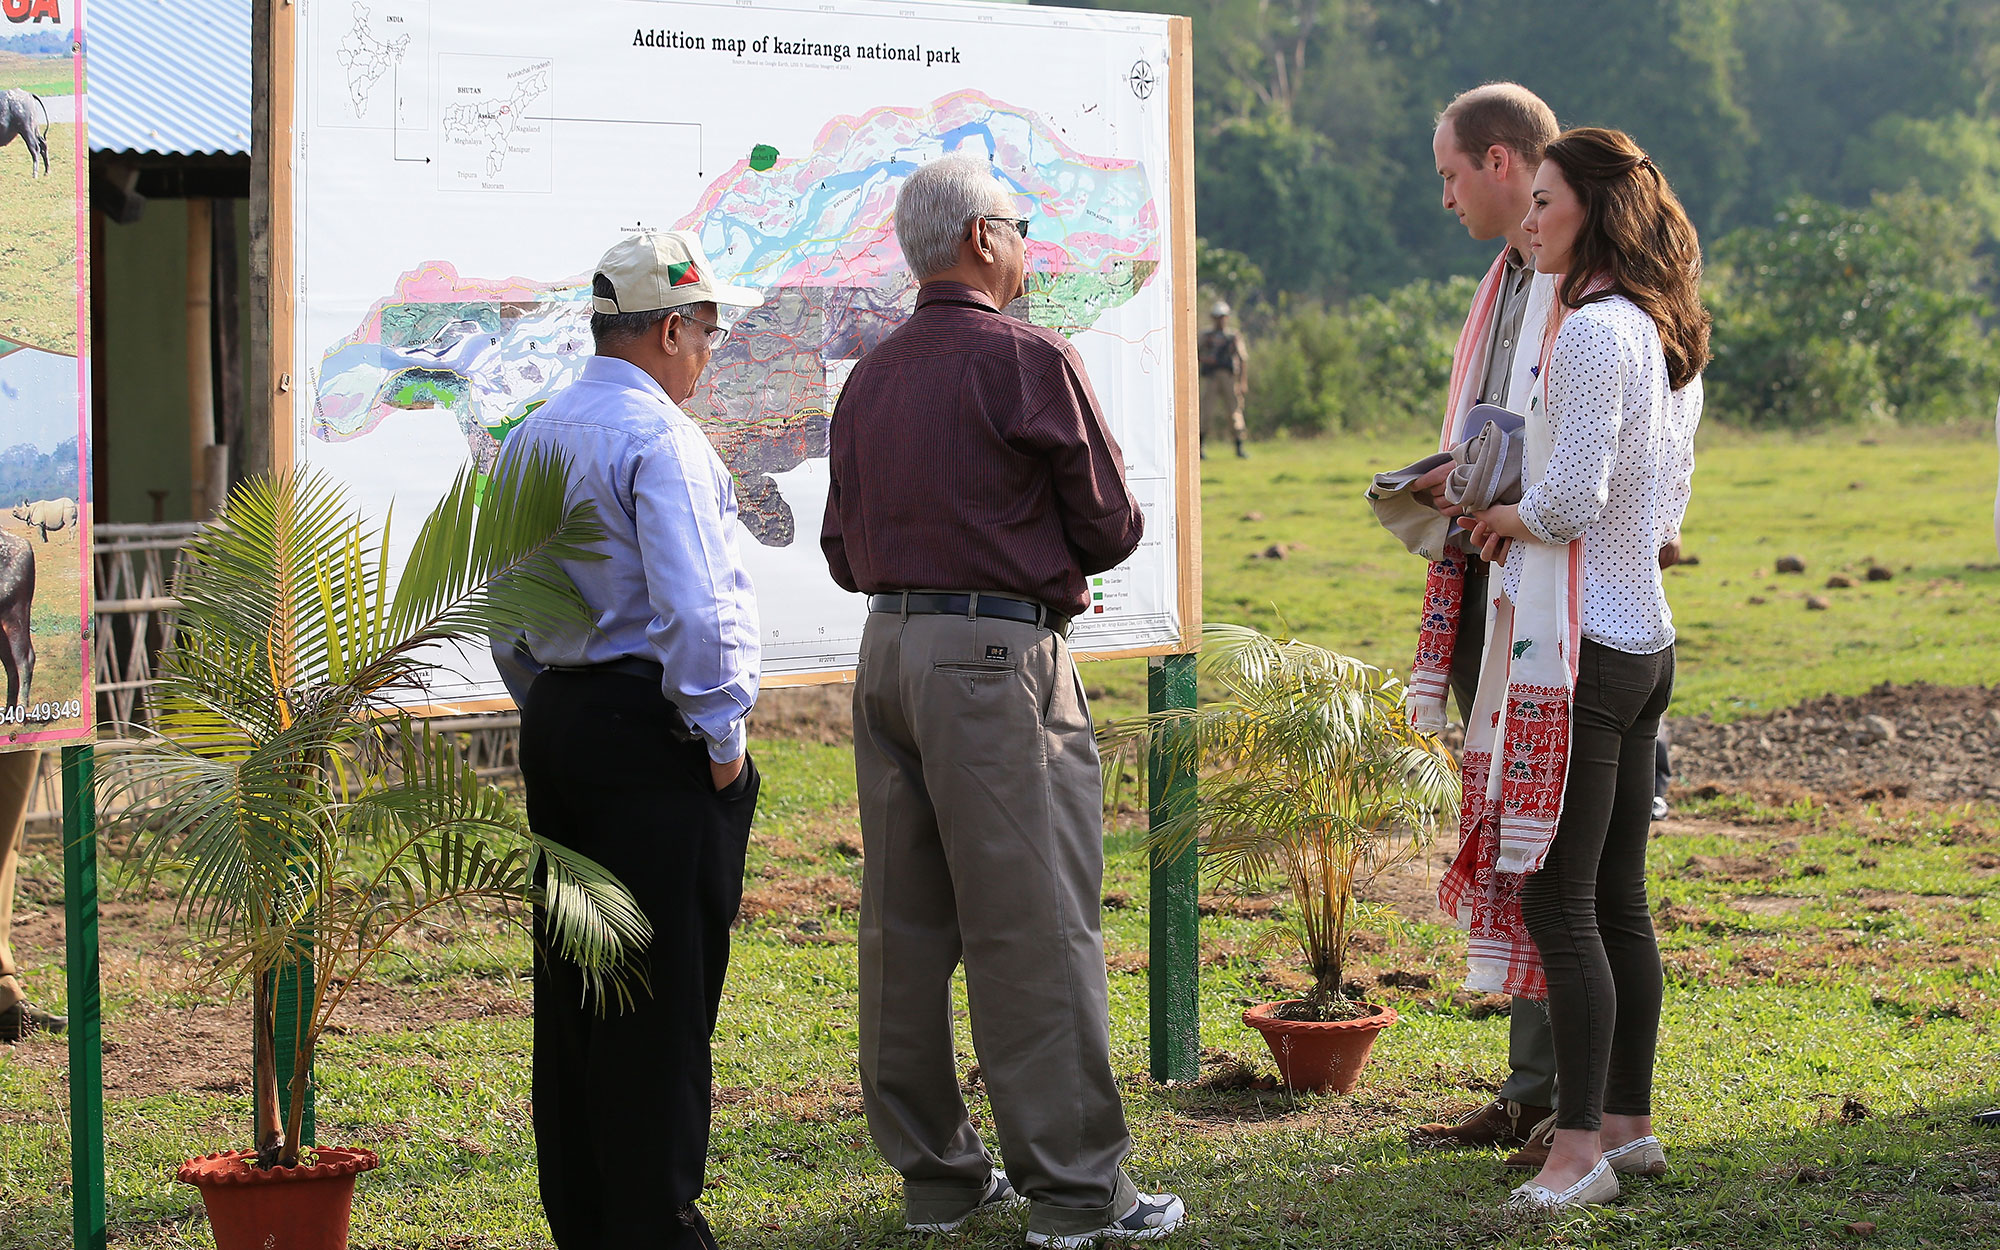 Prince William and Kate Middleton Embark on their Royal Tour of India and Bhutan: Learning About the Park